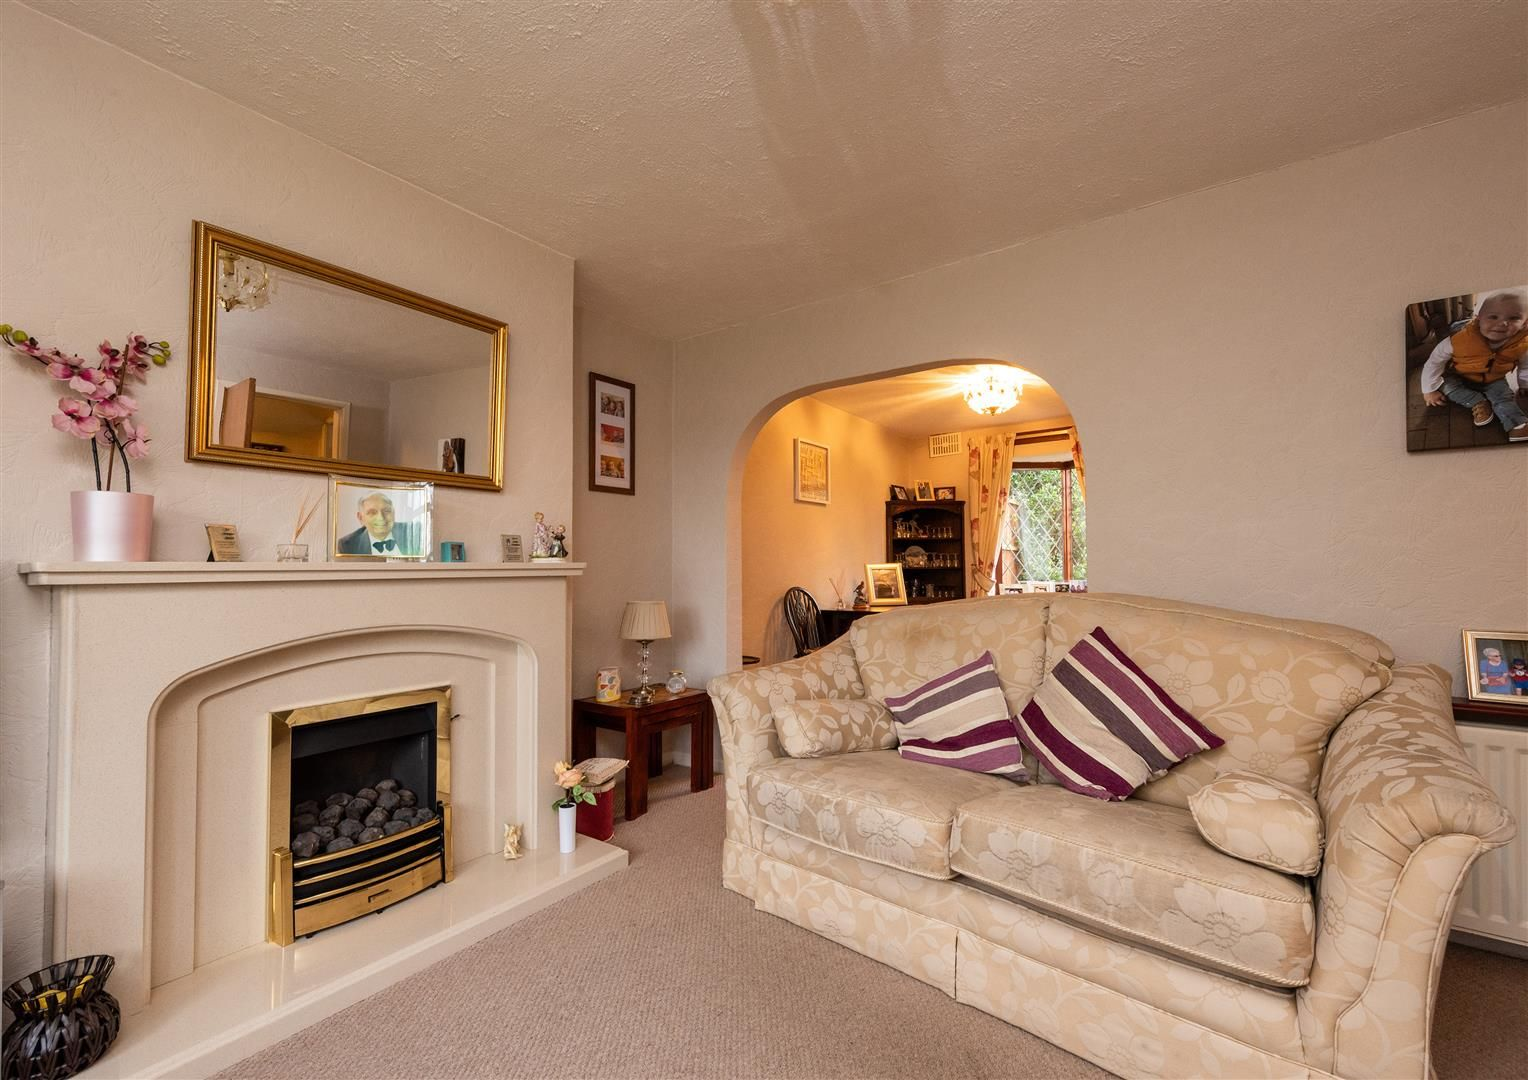 3 bed house for sale in Belbroughton  - Property Image 3